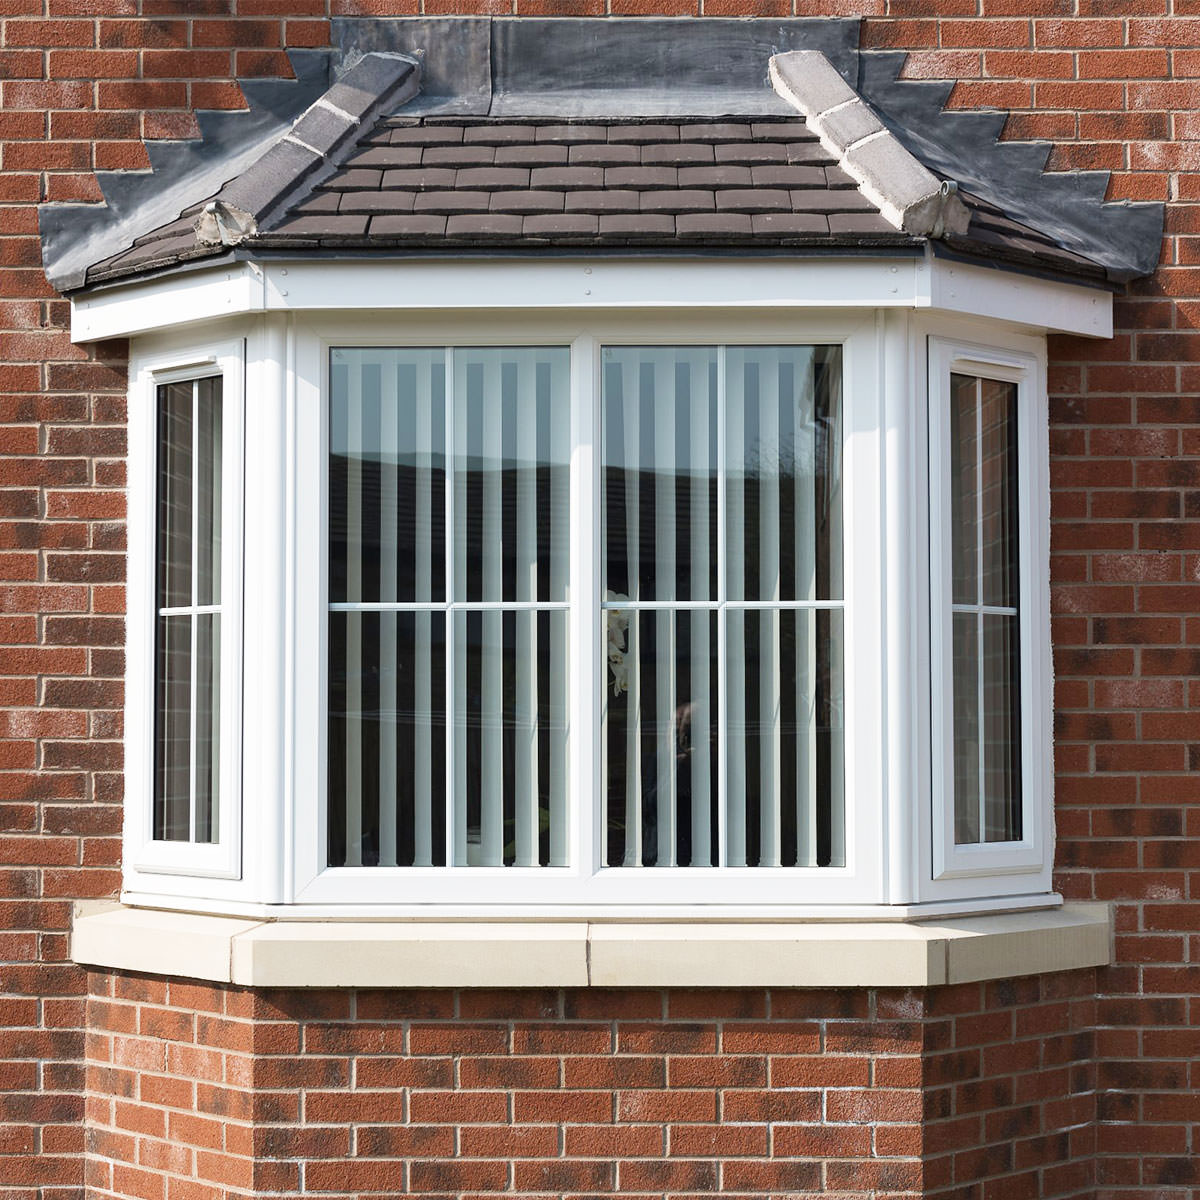 Upvc bow and bay windows sutton double glazed windows for Upvc windows